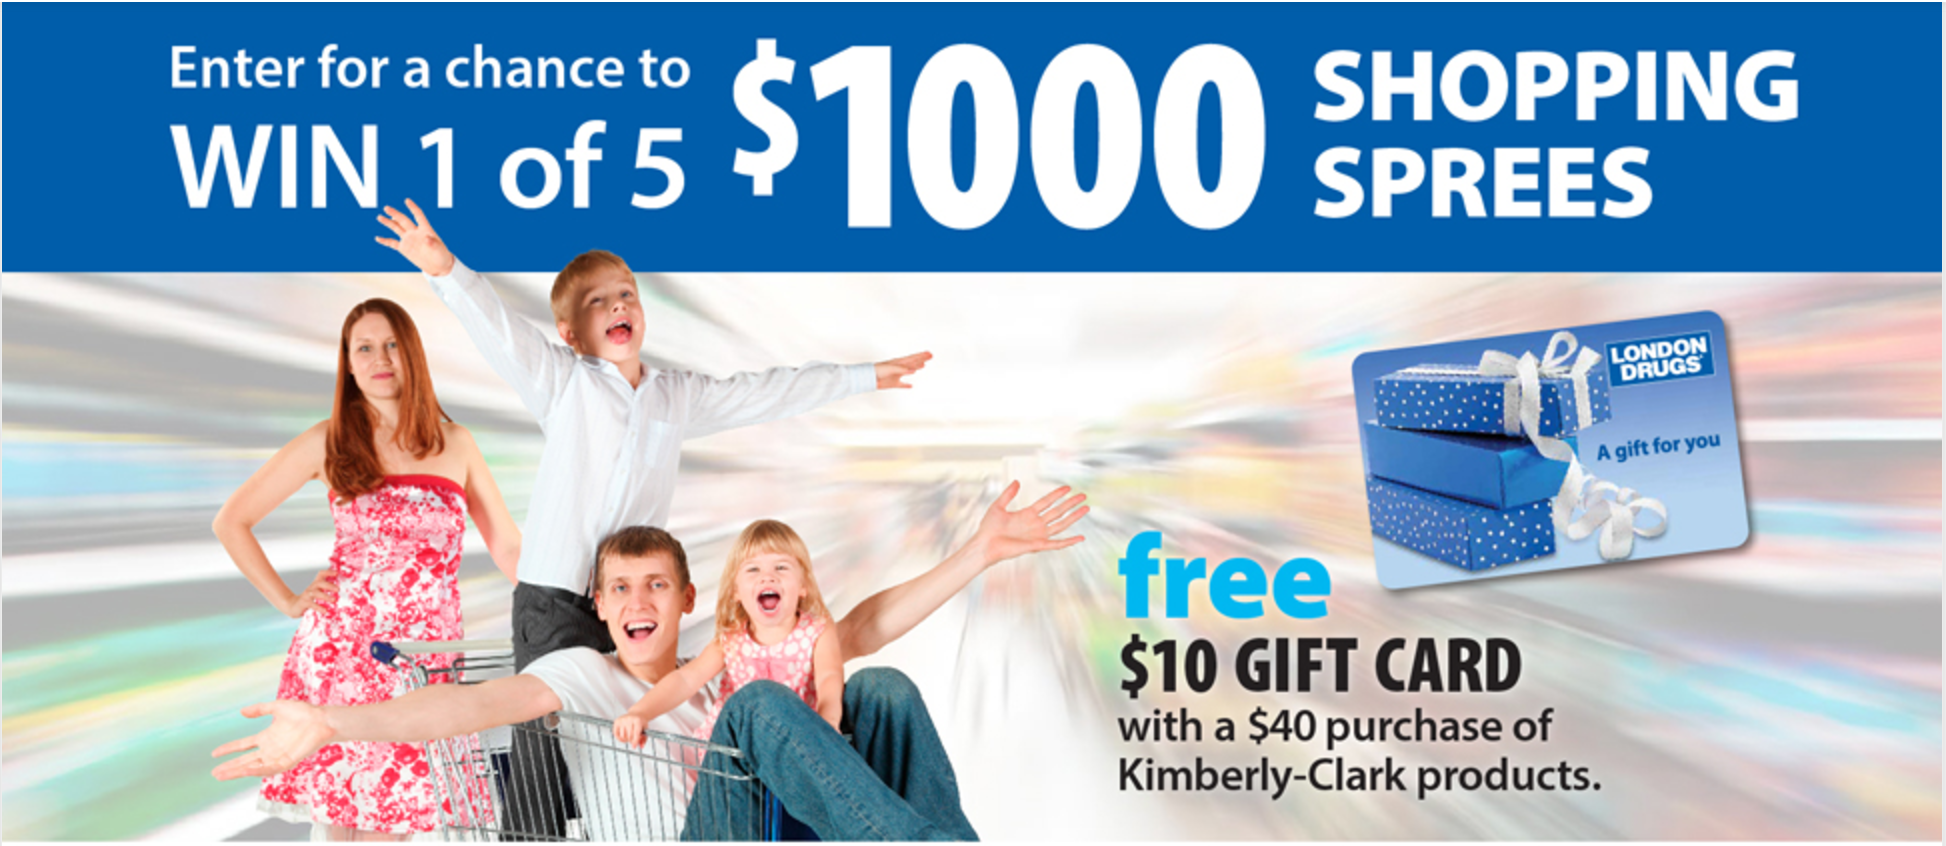 London Drugs Giveaway